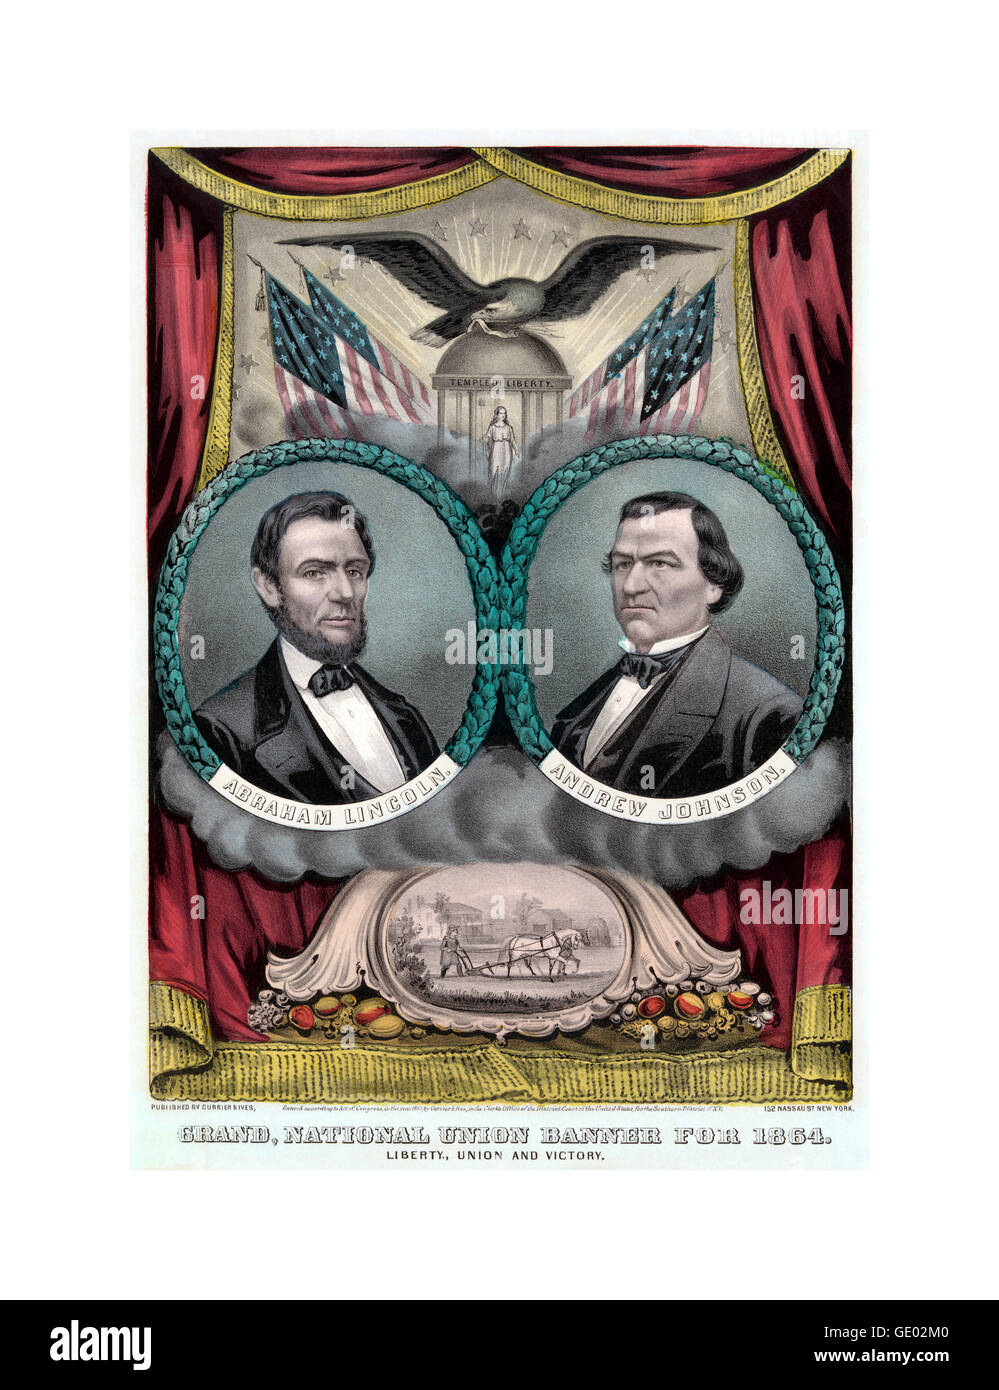 United States Republican presidential ticket, 1864 poster shows a campaign banner for Republican presidential candidate - Stock Image